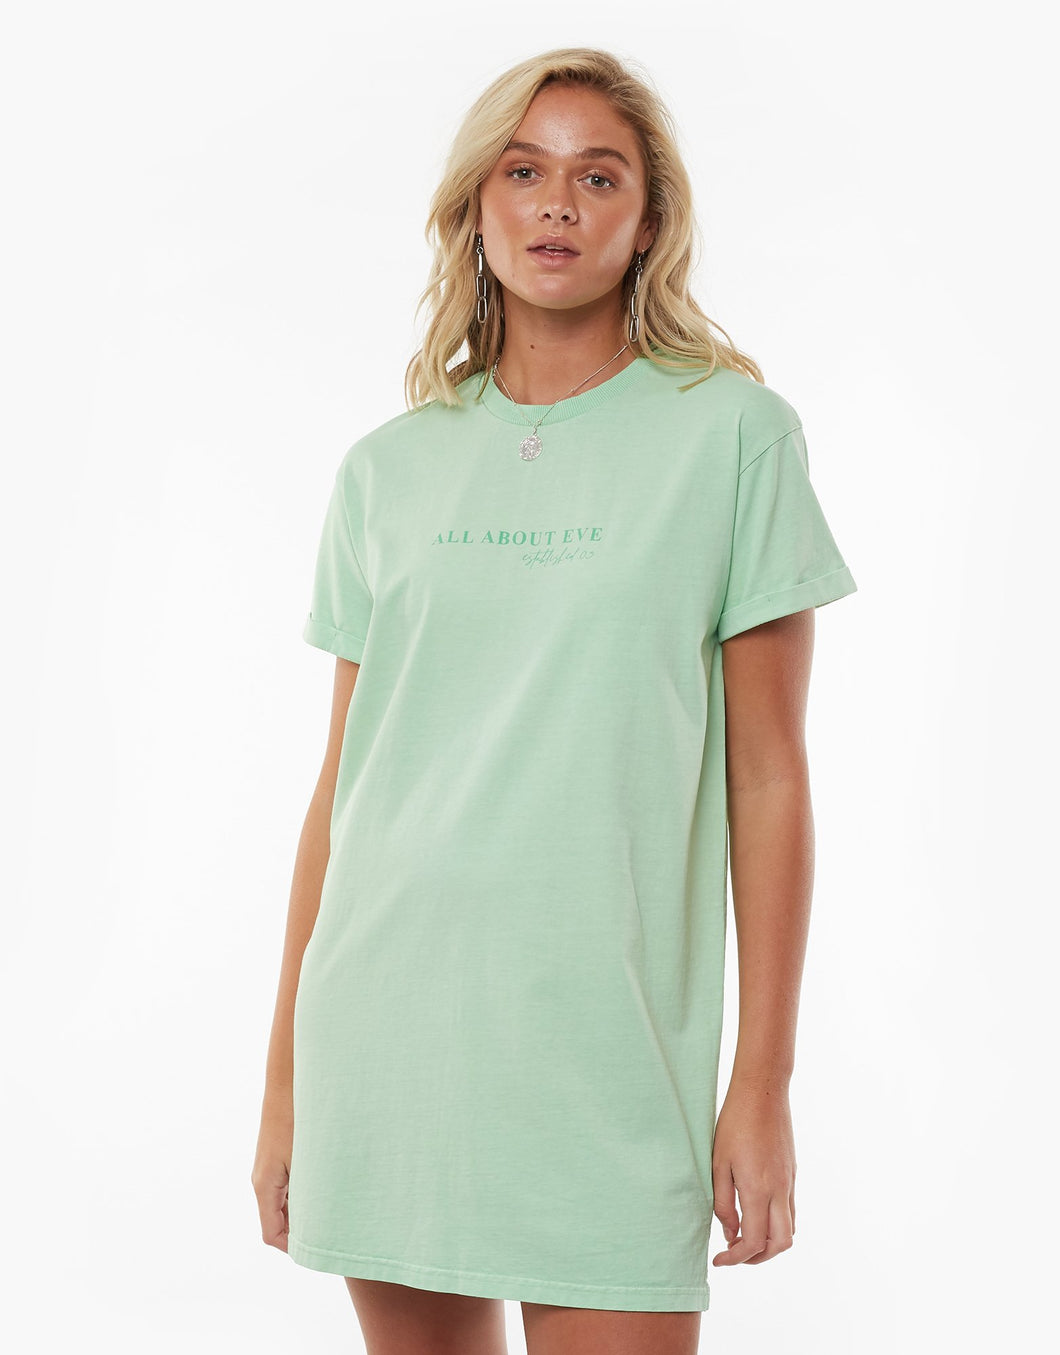 All About Eve Ladies Washed Tee Dress - Mint